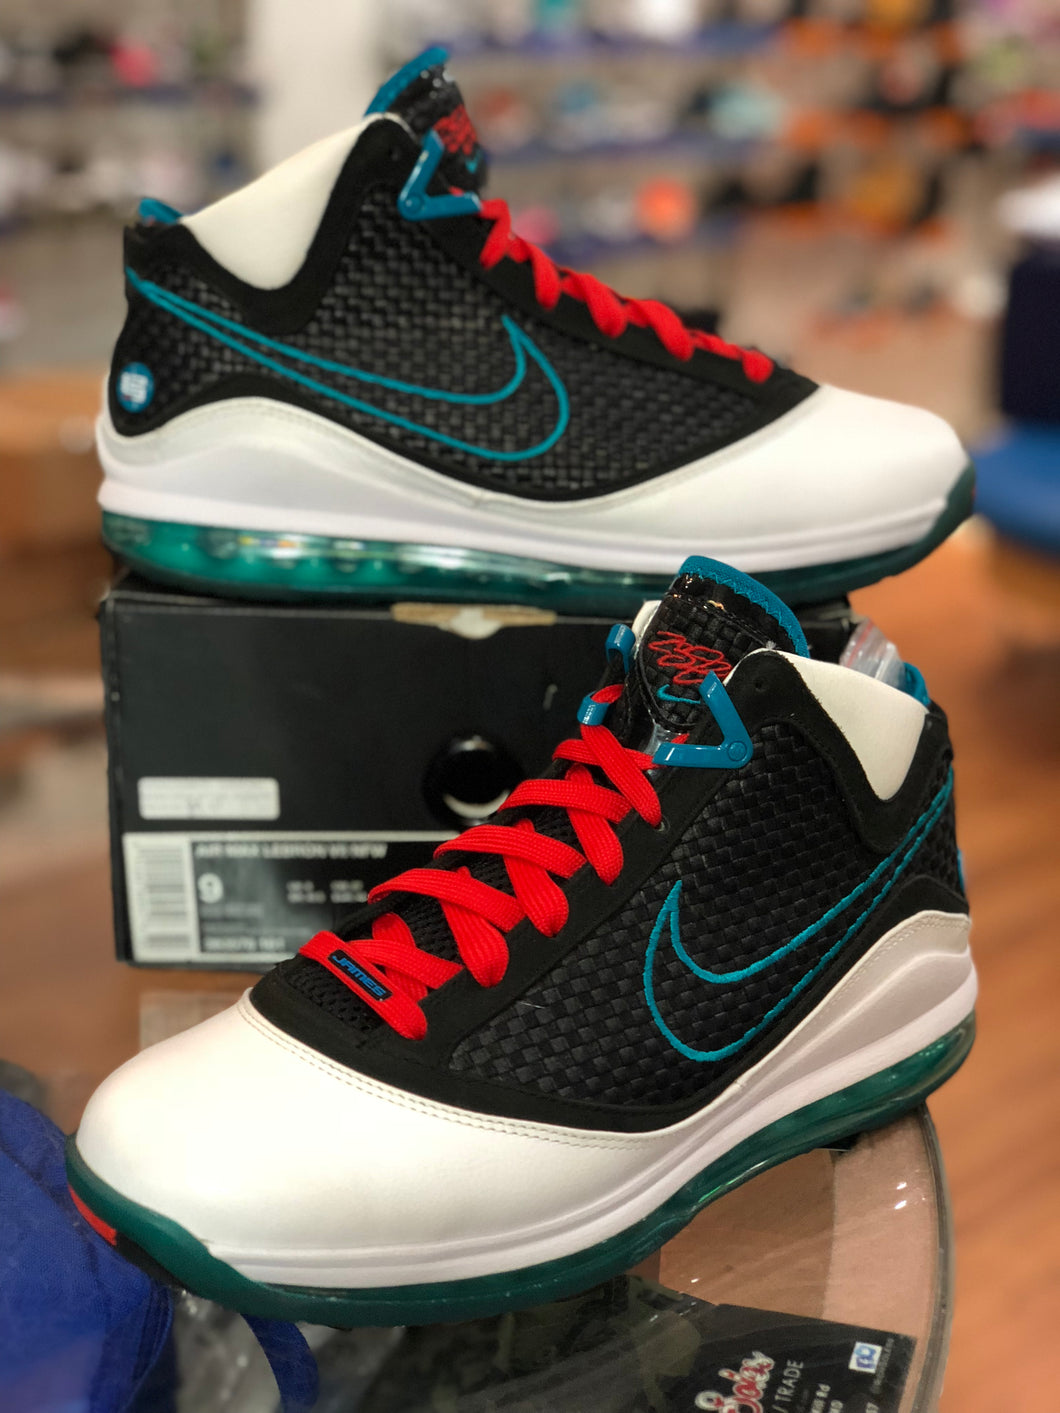 Red Carpet Lebron 7s size 9